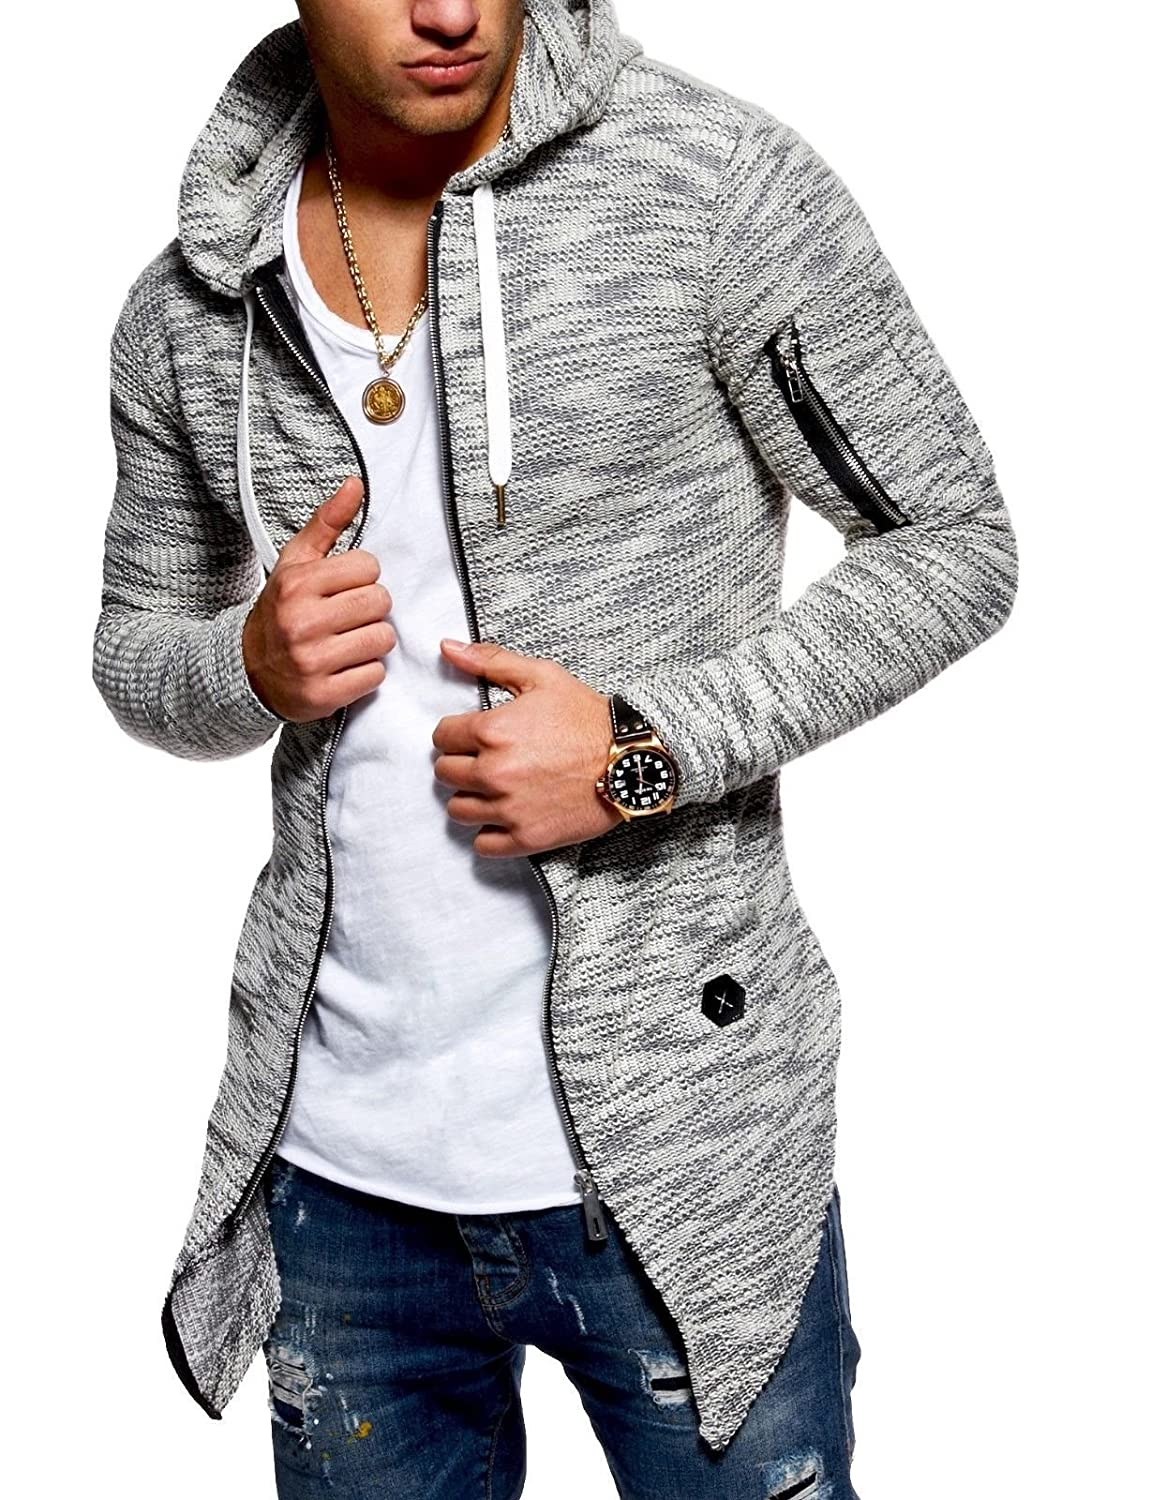 Behype Men's Cardigan Sweater Jacket oversize with zipper MT-7532